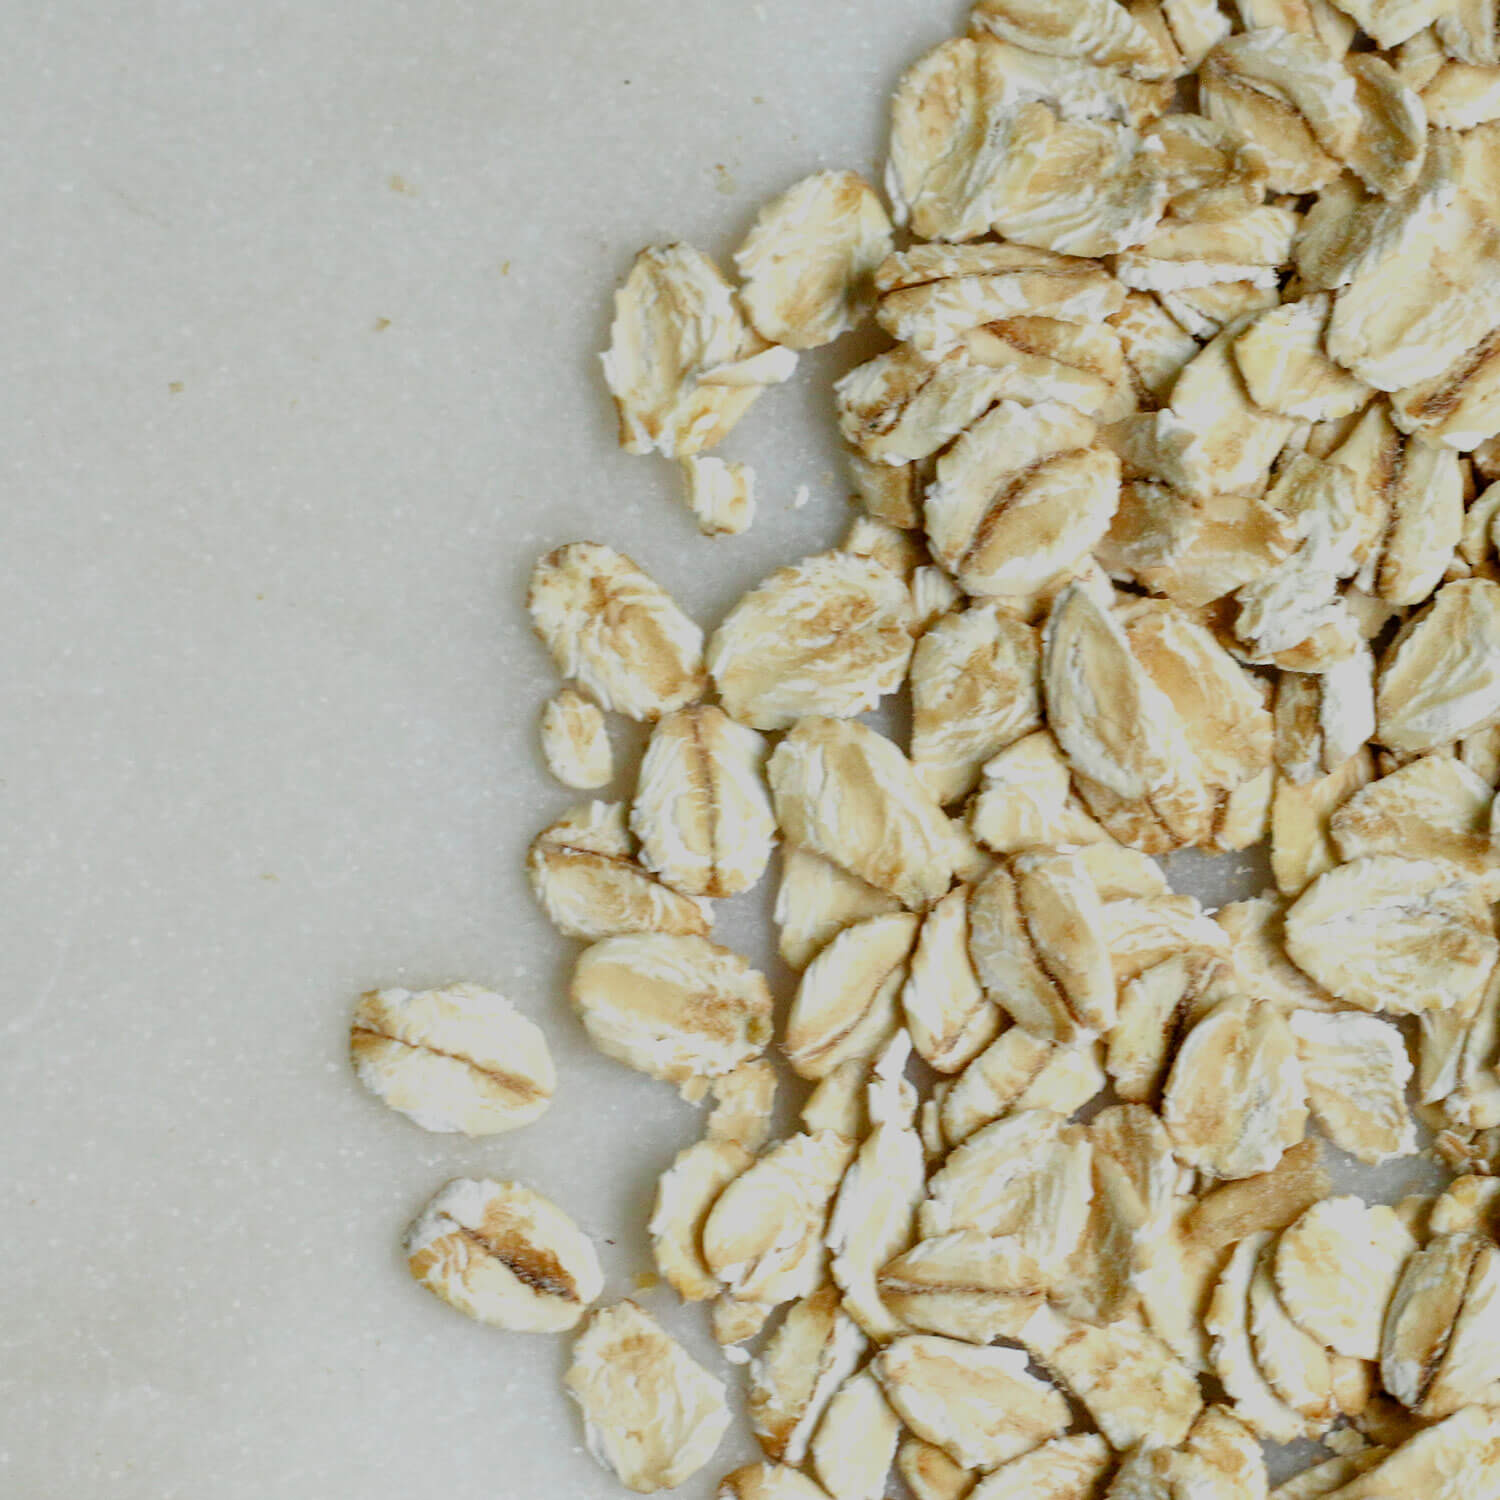 Scattered dry oats